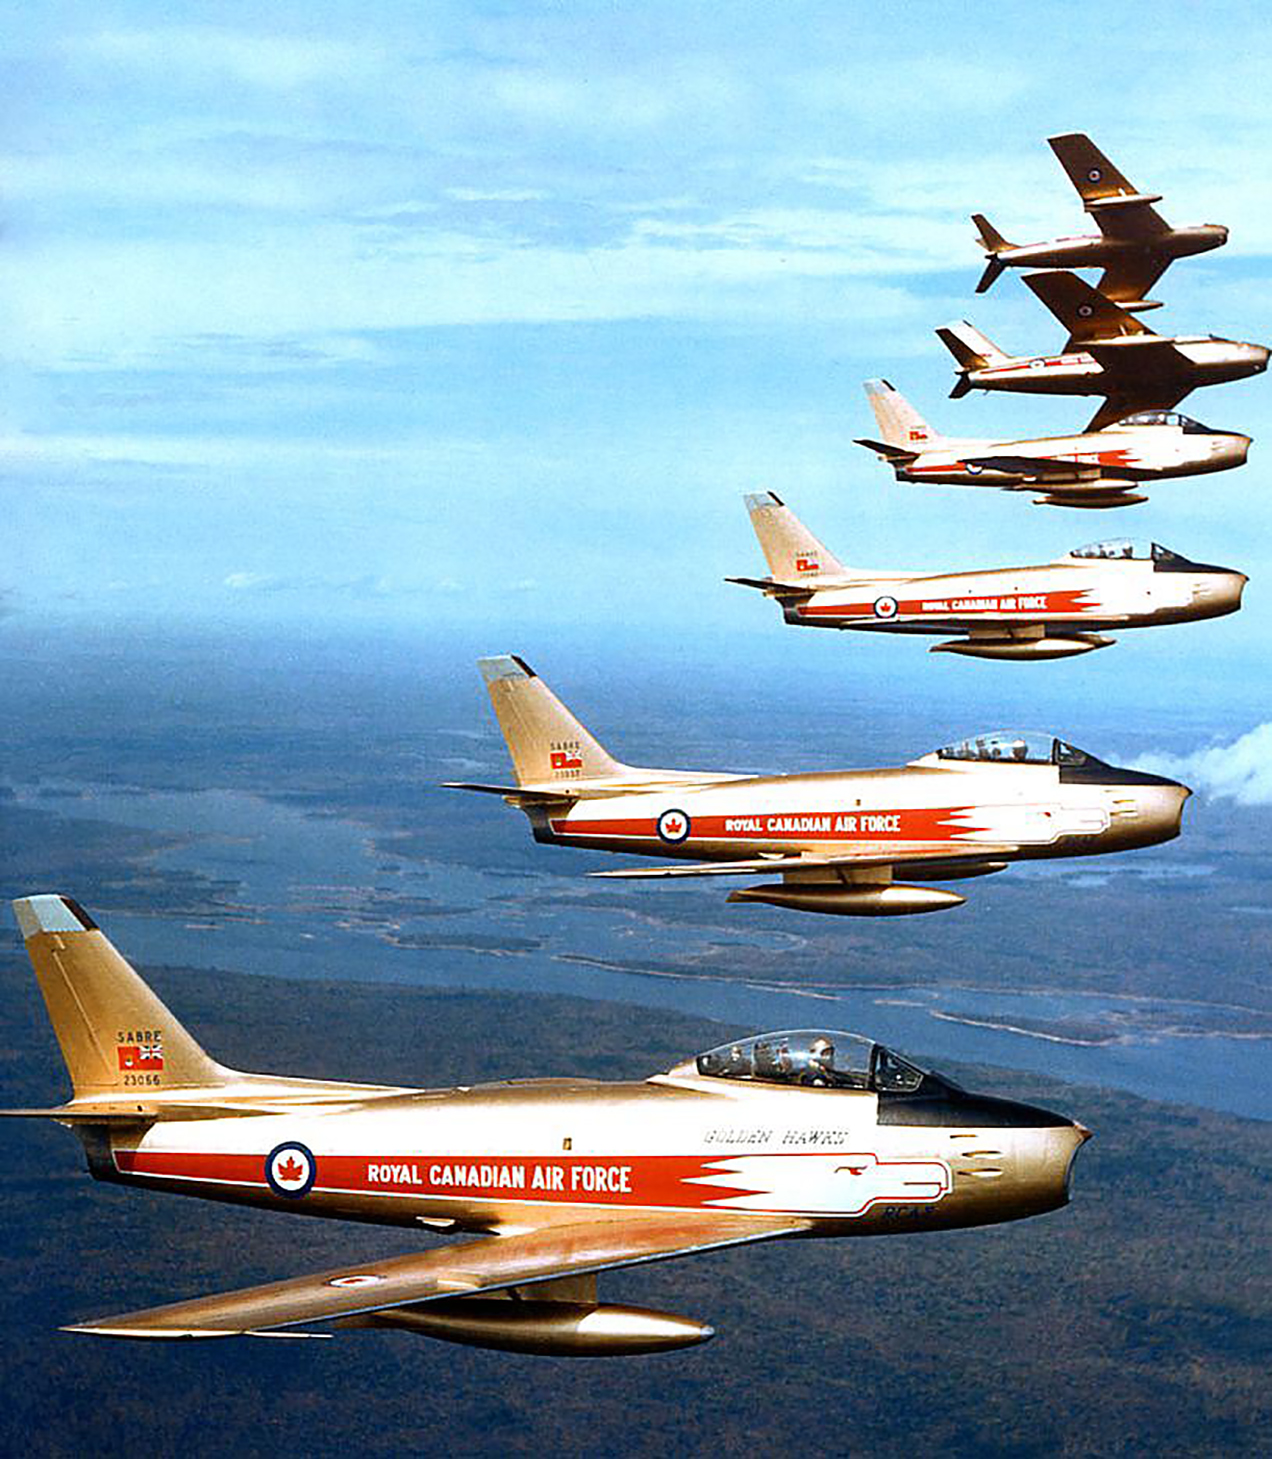 The Golden Hawks, were formed in 1959 to celebrate the 50th anniversary of powered flight in Canada as well as the 35th anniversary of the RCAF. However, their popularity and the support of the Chief of the Air Staff extended their existence. The team performed 317 shows until the team wrapped up in 1963 with a final show in Montreal, Quebec. Flying gilded F-86 Sabres, they captivated audiences by flying low, sliding back their canopies and waving at the crowd. That's showmanship! PHOTO: DND